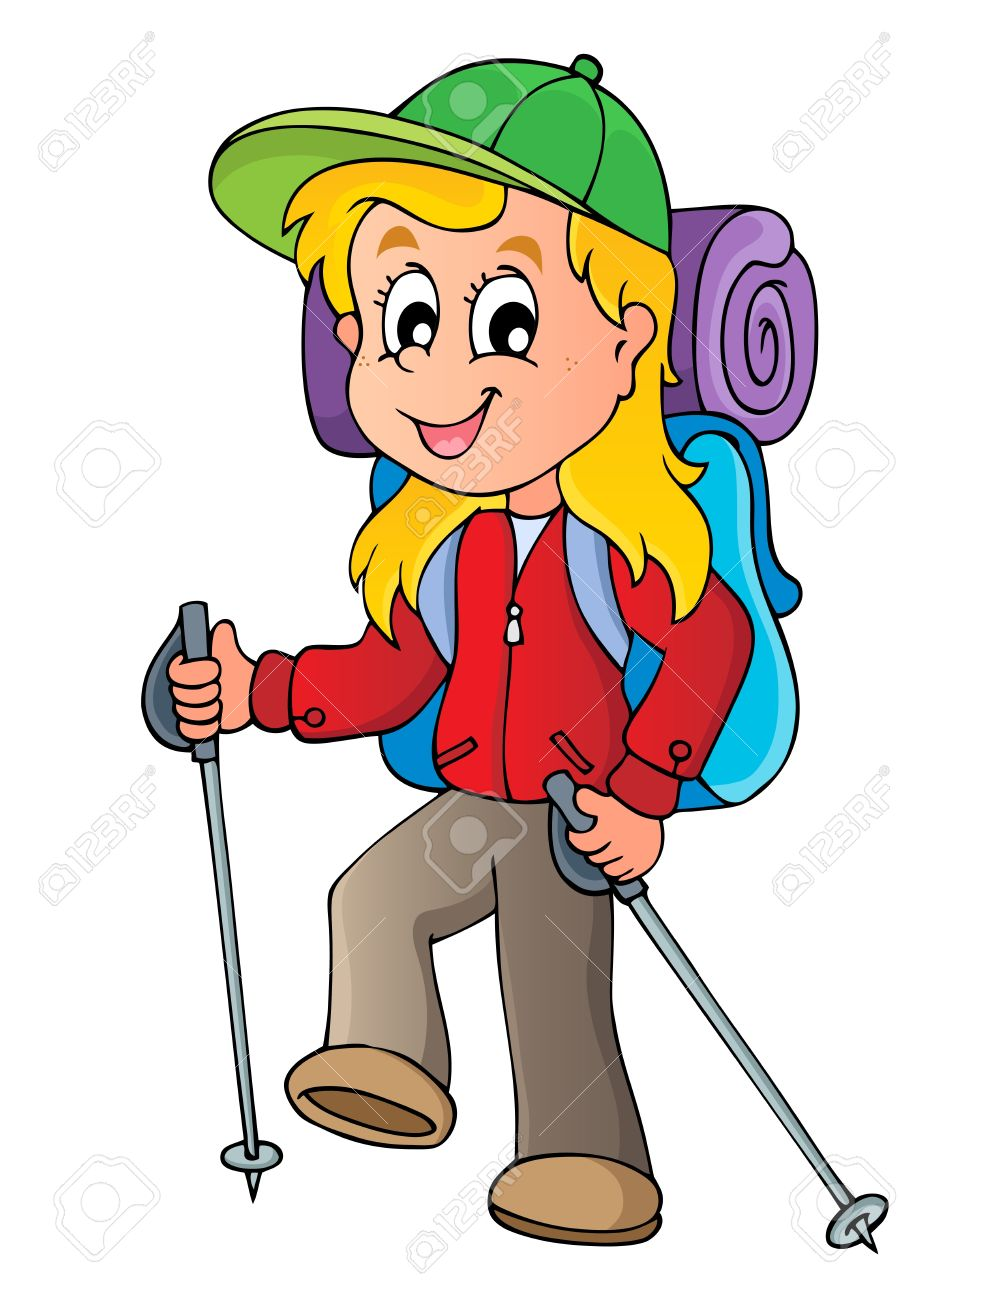 Woman hiking clipart png black and white library Girl Hiking Clipart | Free download best Girl Hiking Clipart ... png black and white library